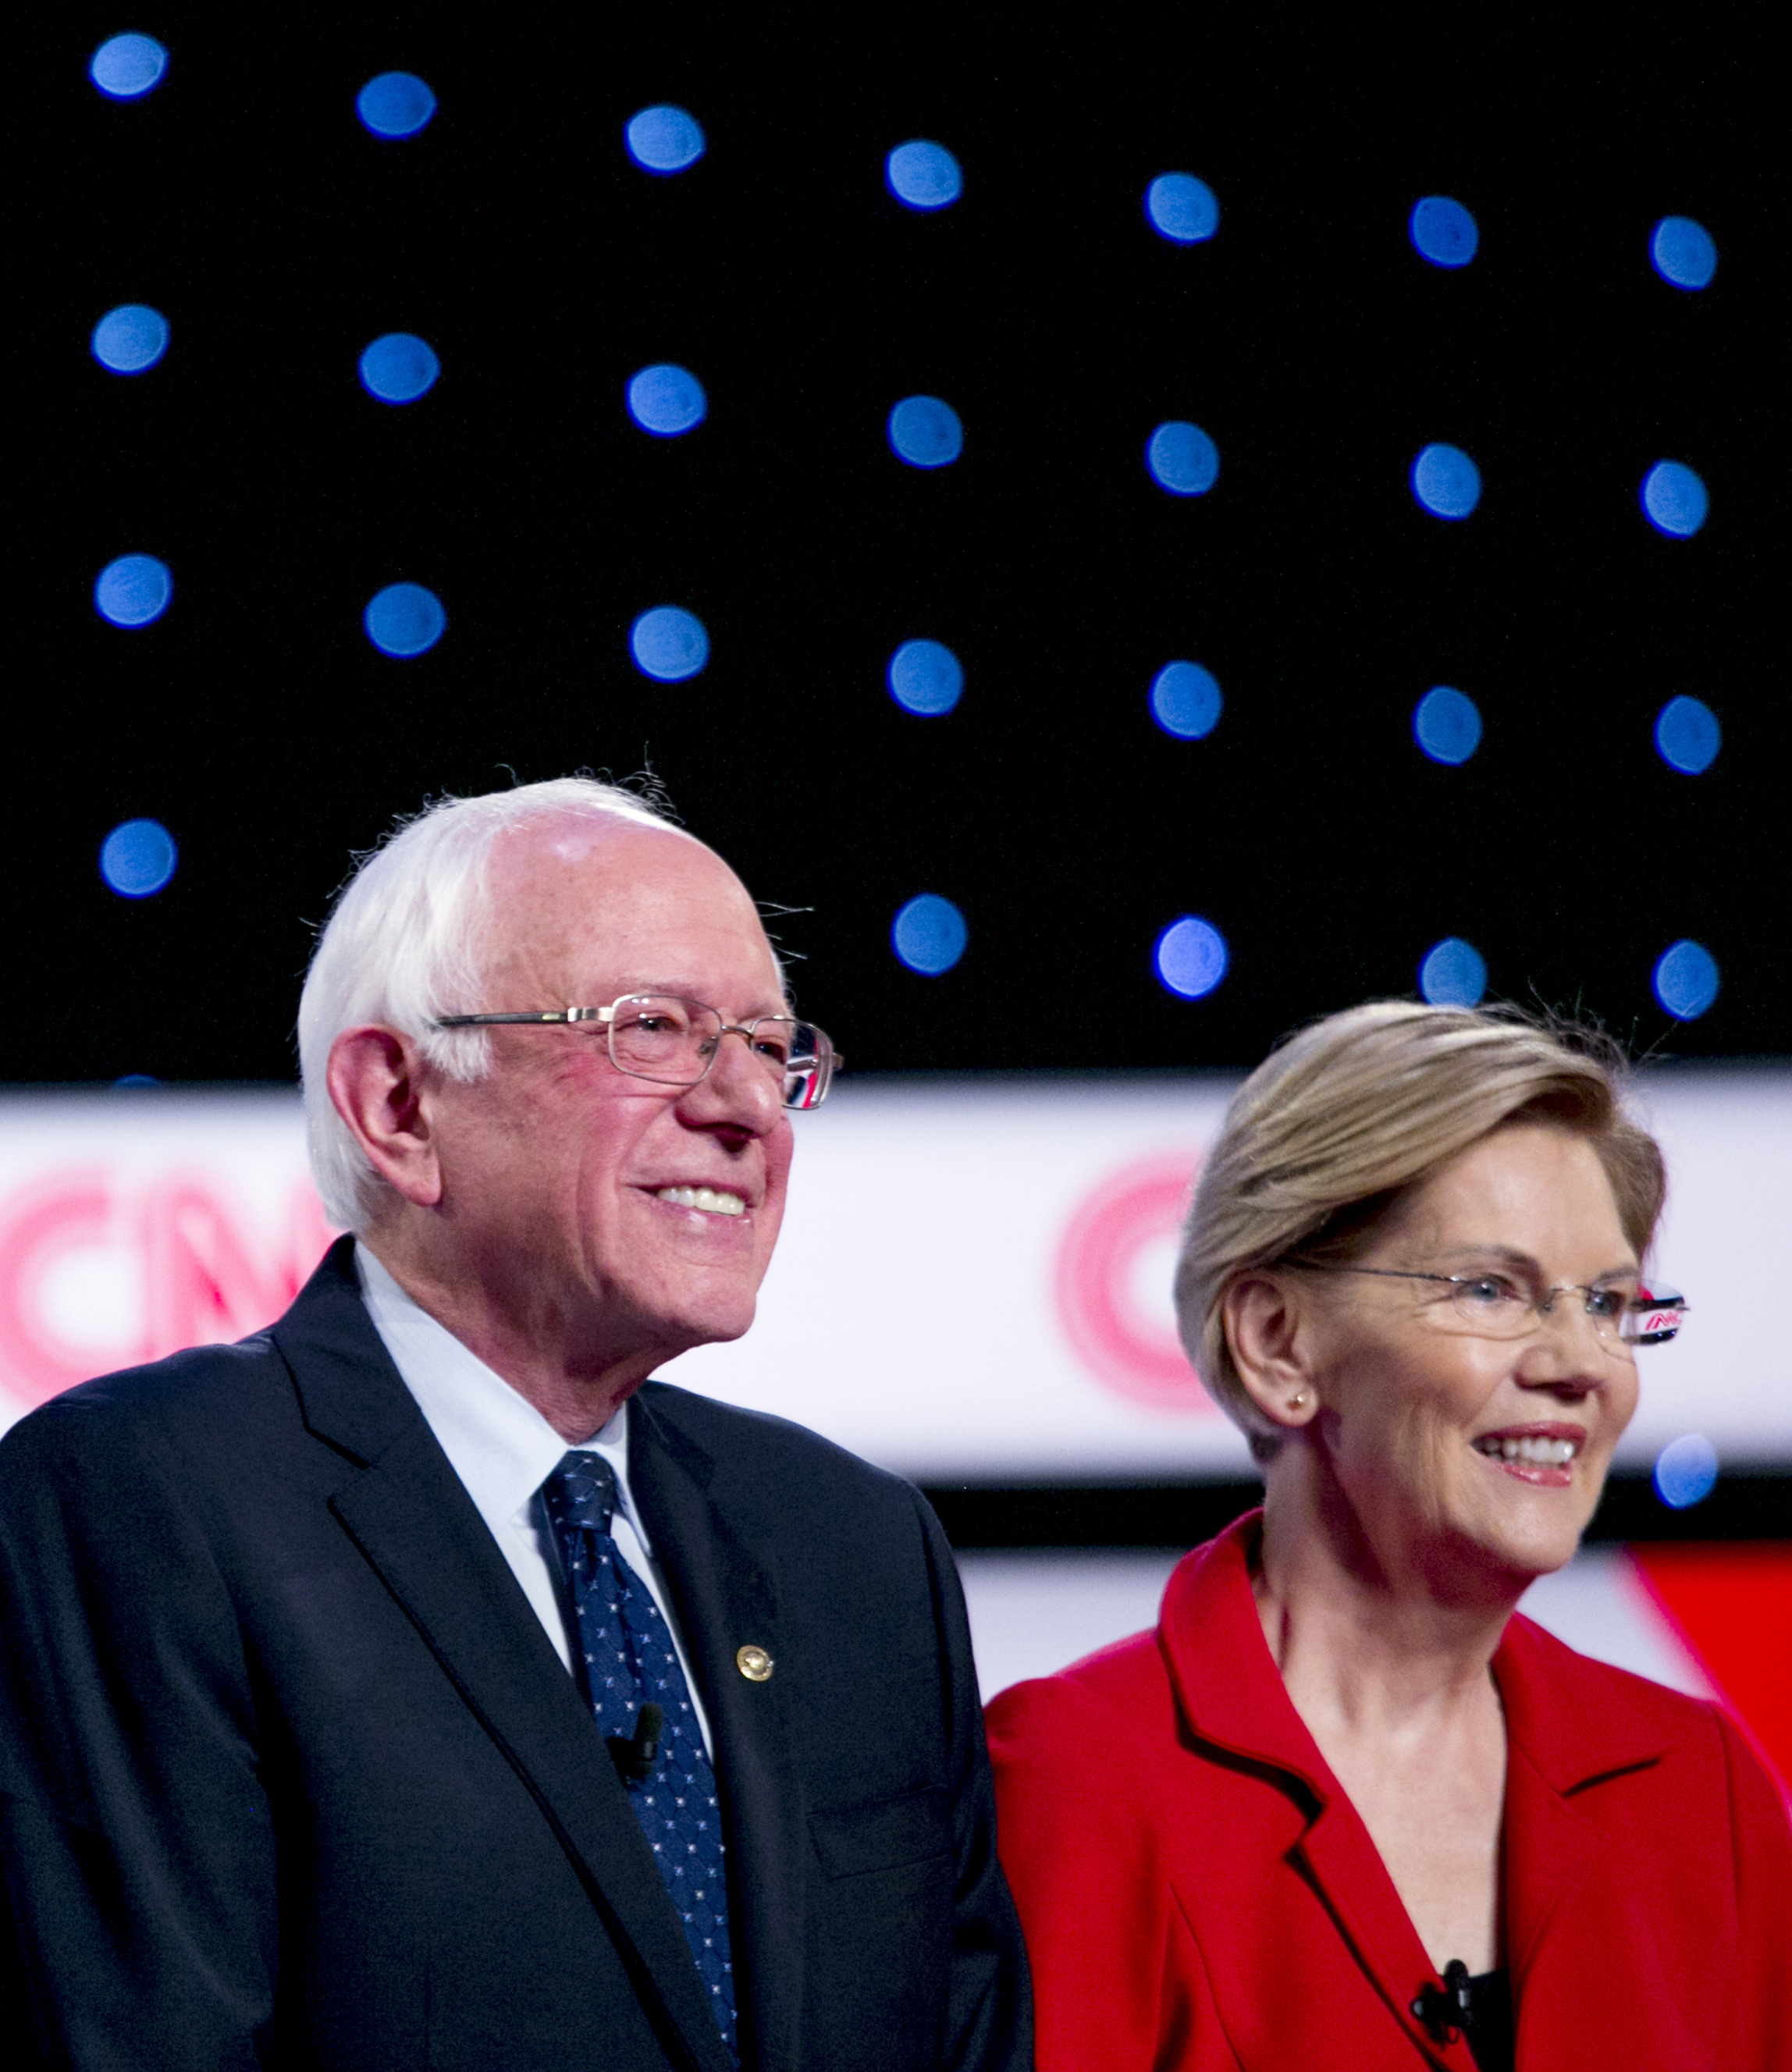 2020 Democratic Presidential candidates Senator Bernie Sanders and Senator Elizabeth Warren stand on stage during the Democratic presidential candidate debate in Detroit, Michigan, U.S., on Tuesday, July 30, 2019.